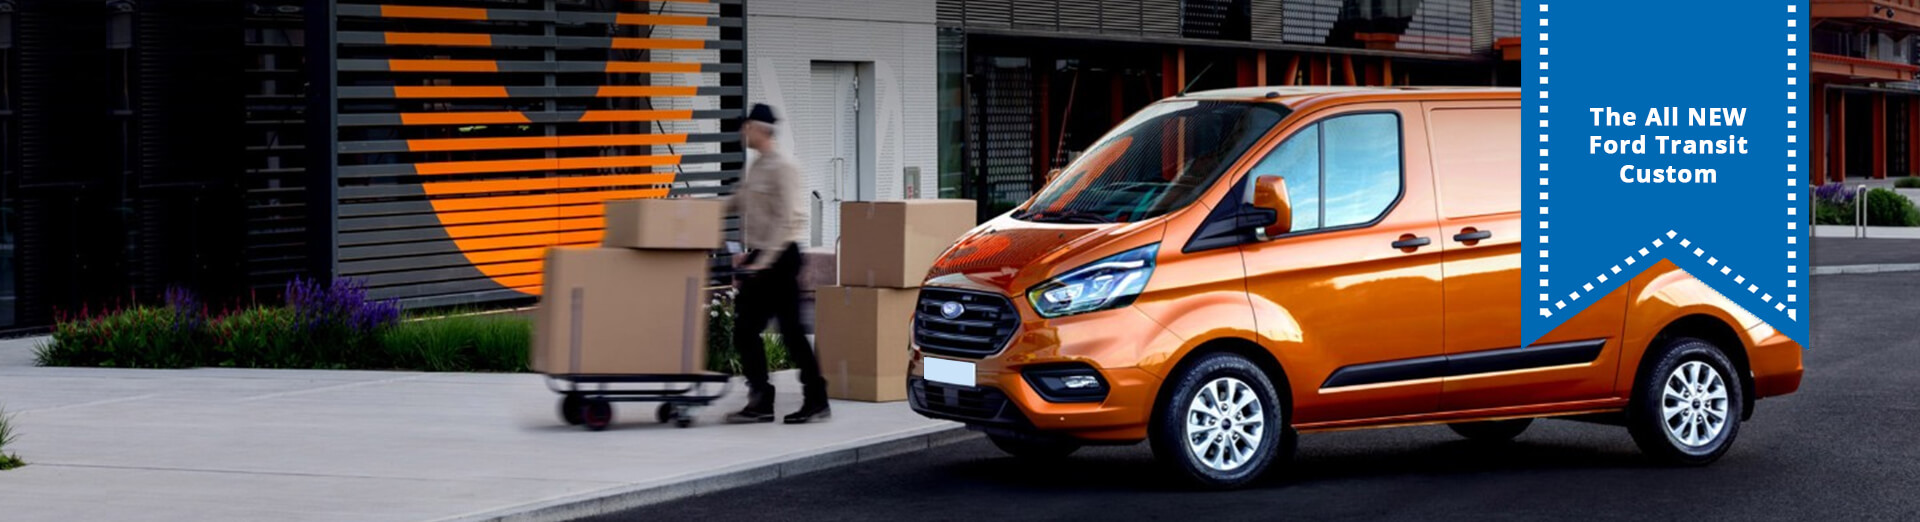 The All New Ford Transit Custom